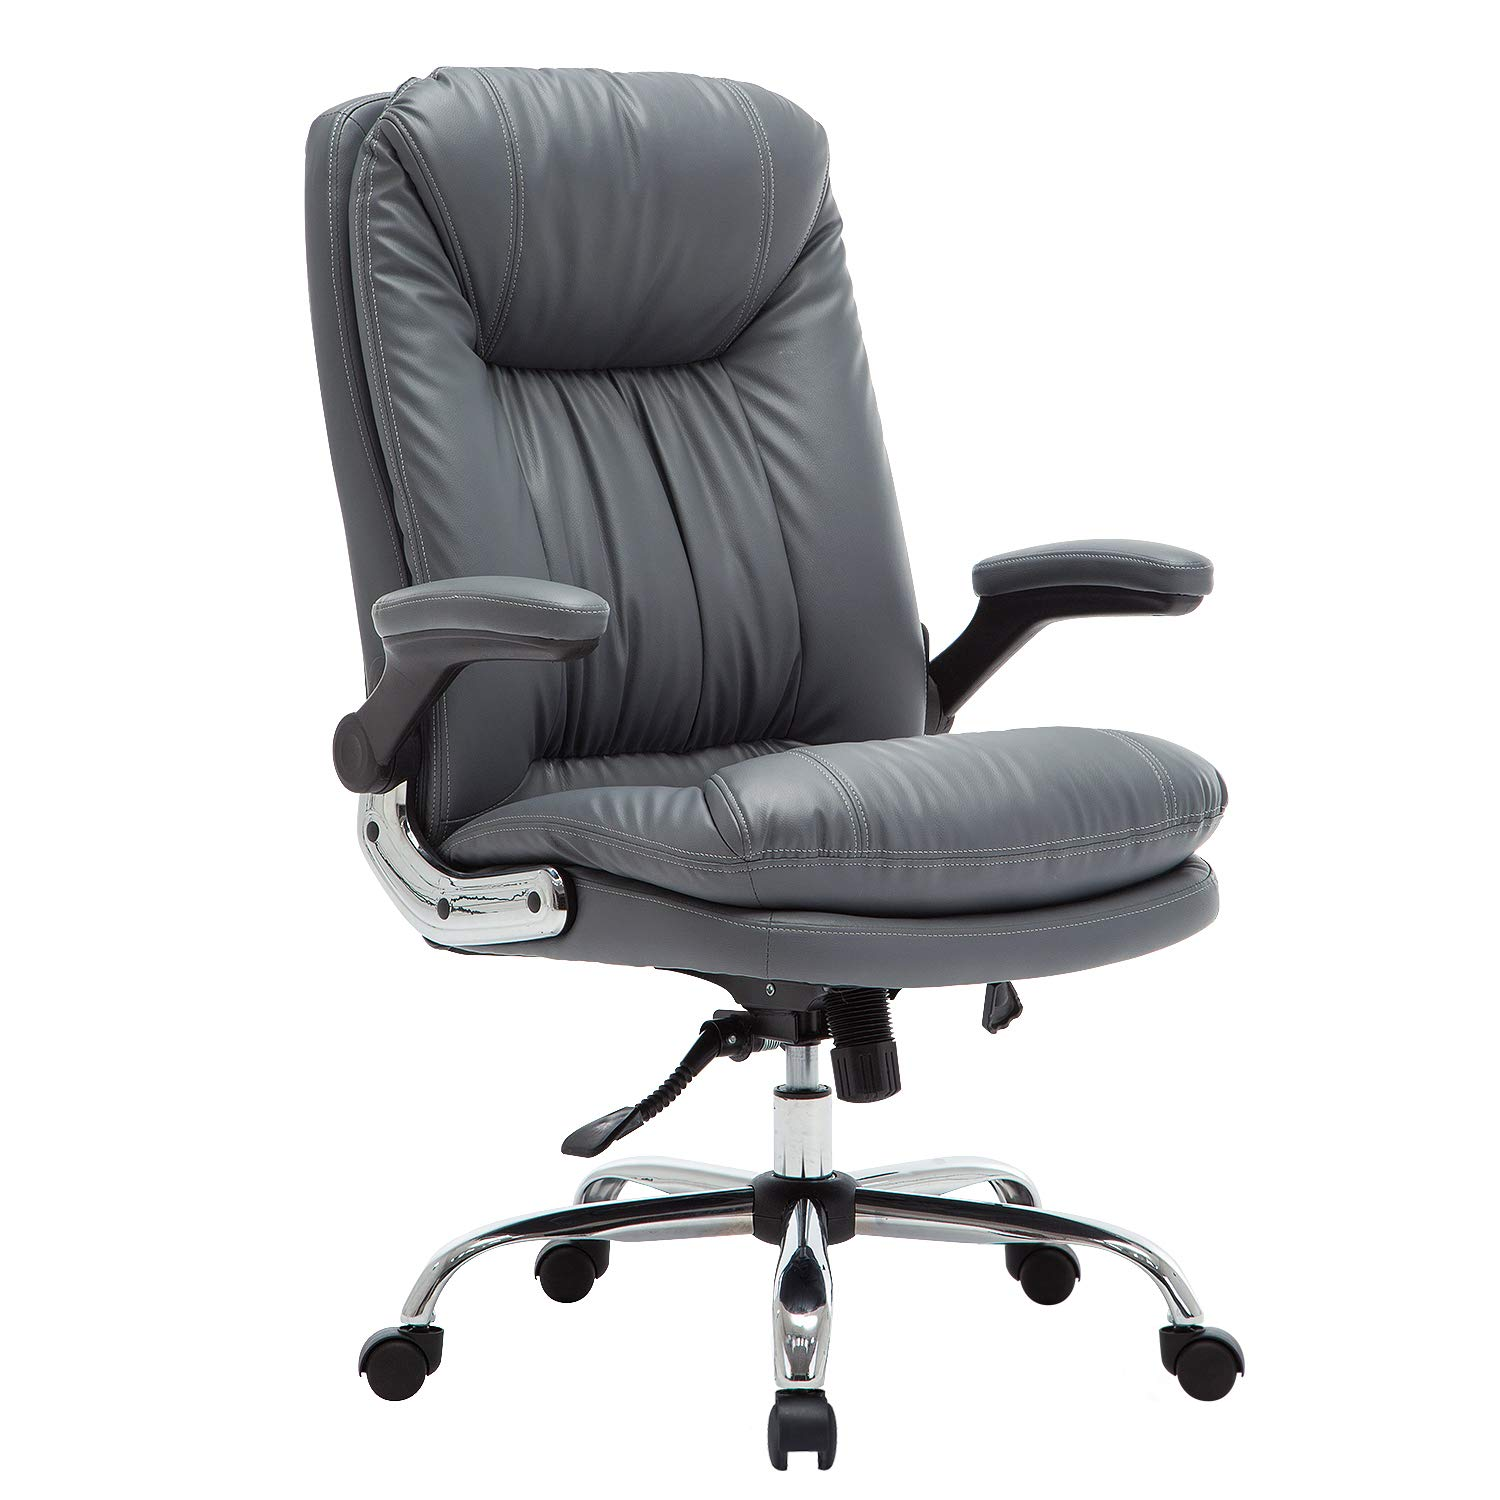 YAMASORO Ergonomic Executive Office Chair - Adjustable Tilt Angle and Flip-up Arms High-Back PU Leather Computer Chair Big for Man and Women Gray by YAMASORO